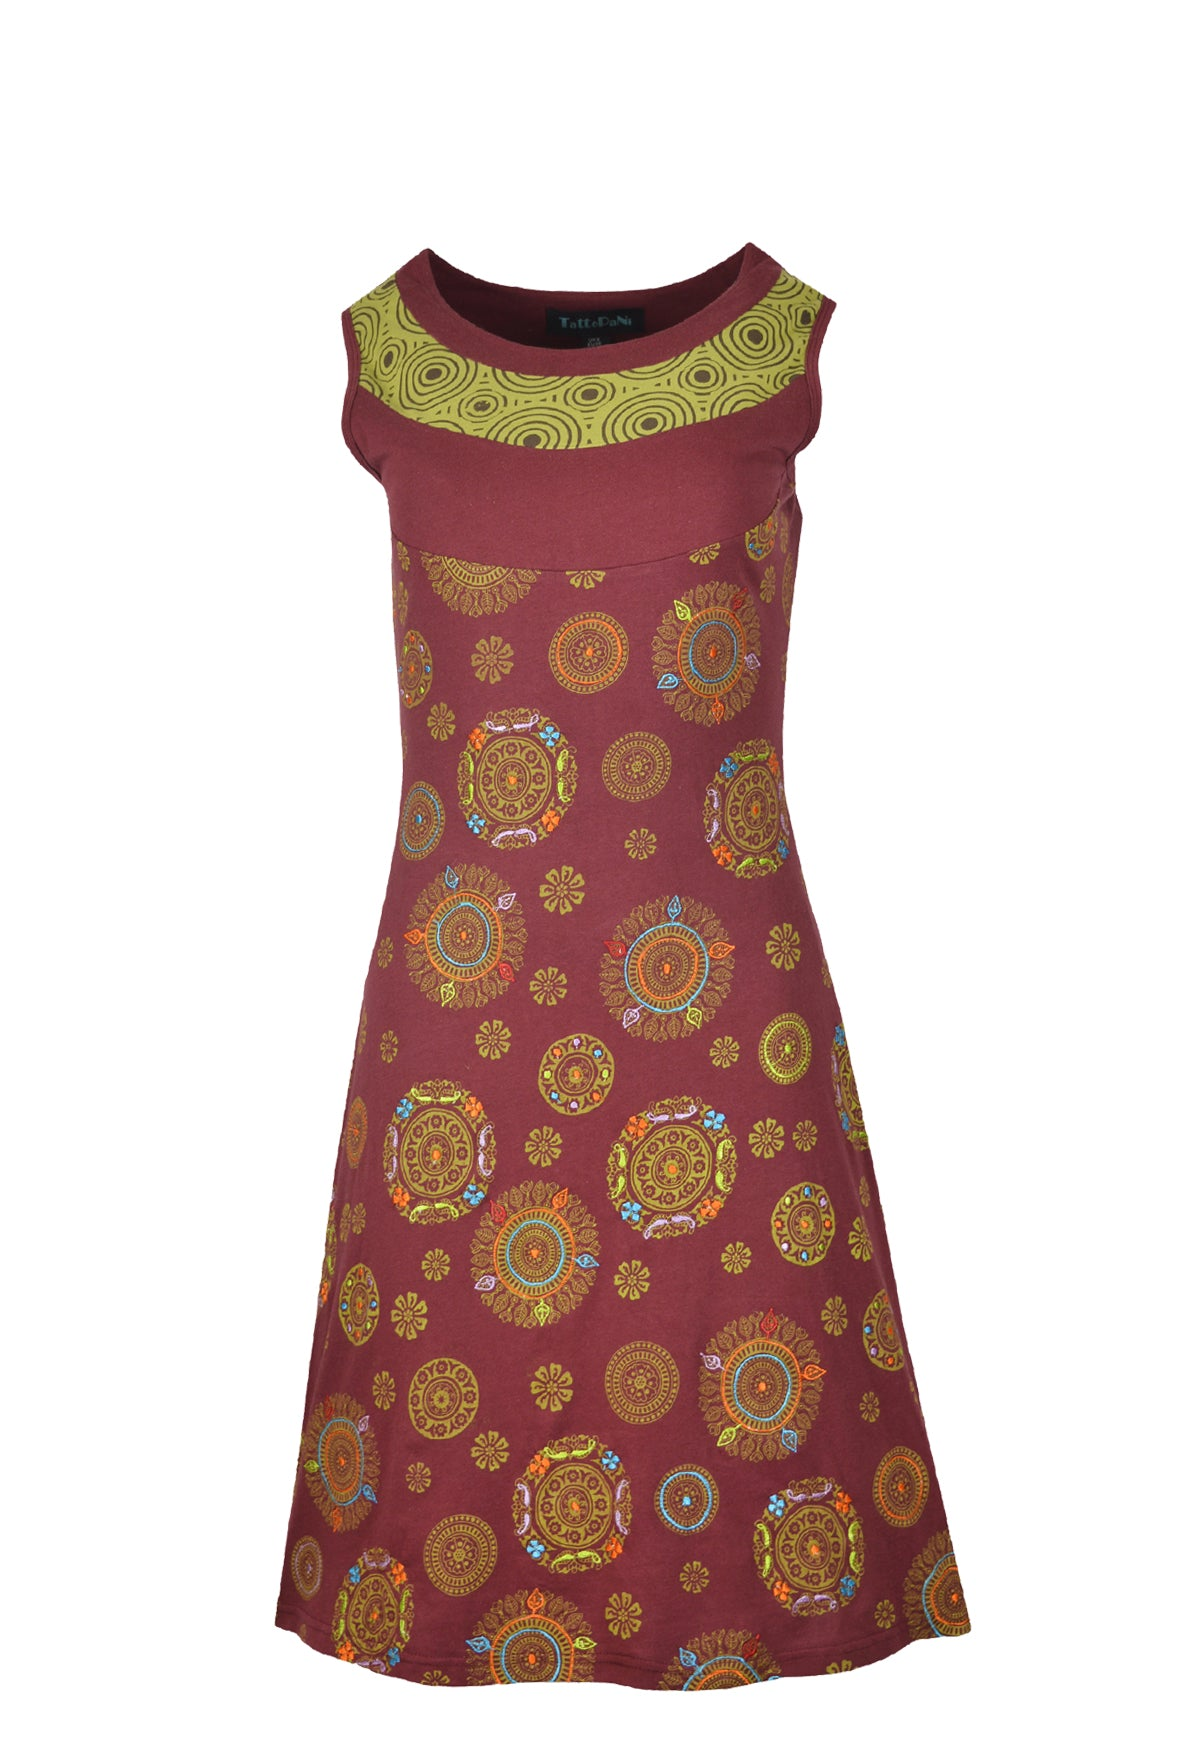 Ladies sleeveless dress with flower print and multi-color embroidery. - Craze Trade Limited